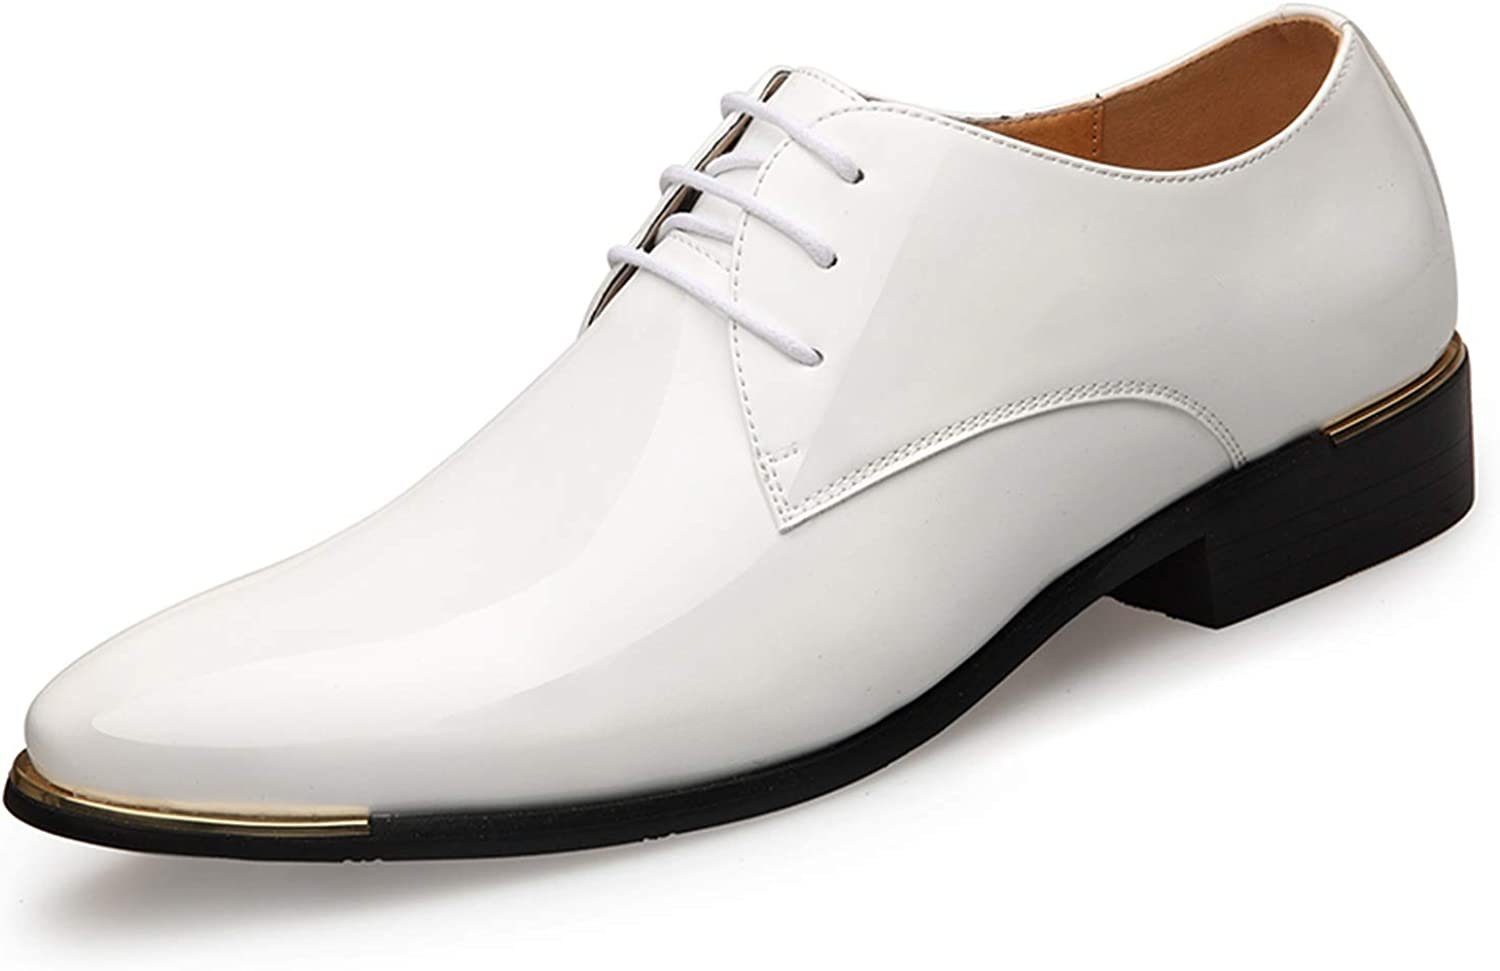 WC-hot Mens Patent Leather Shoes White Wedding Shoes Black Leather Soft Man Dress Shoes,Blue,12